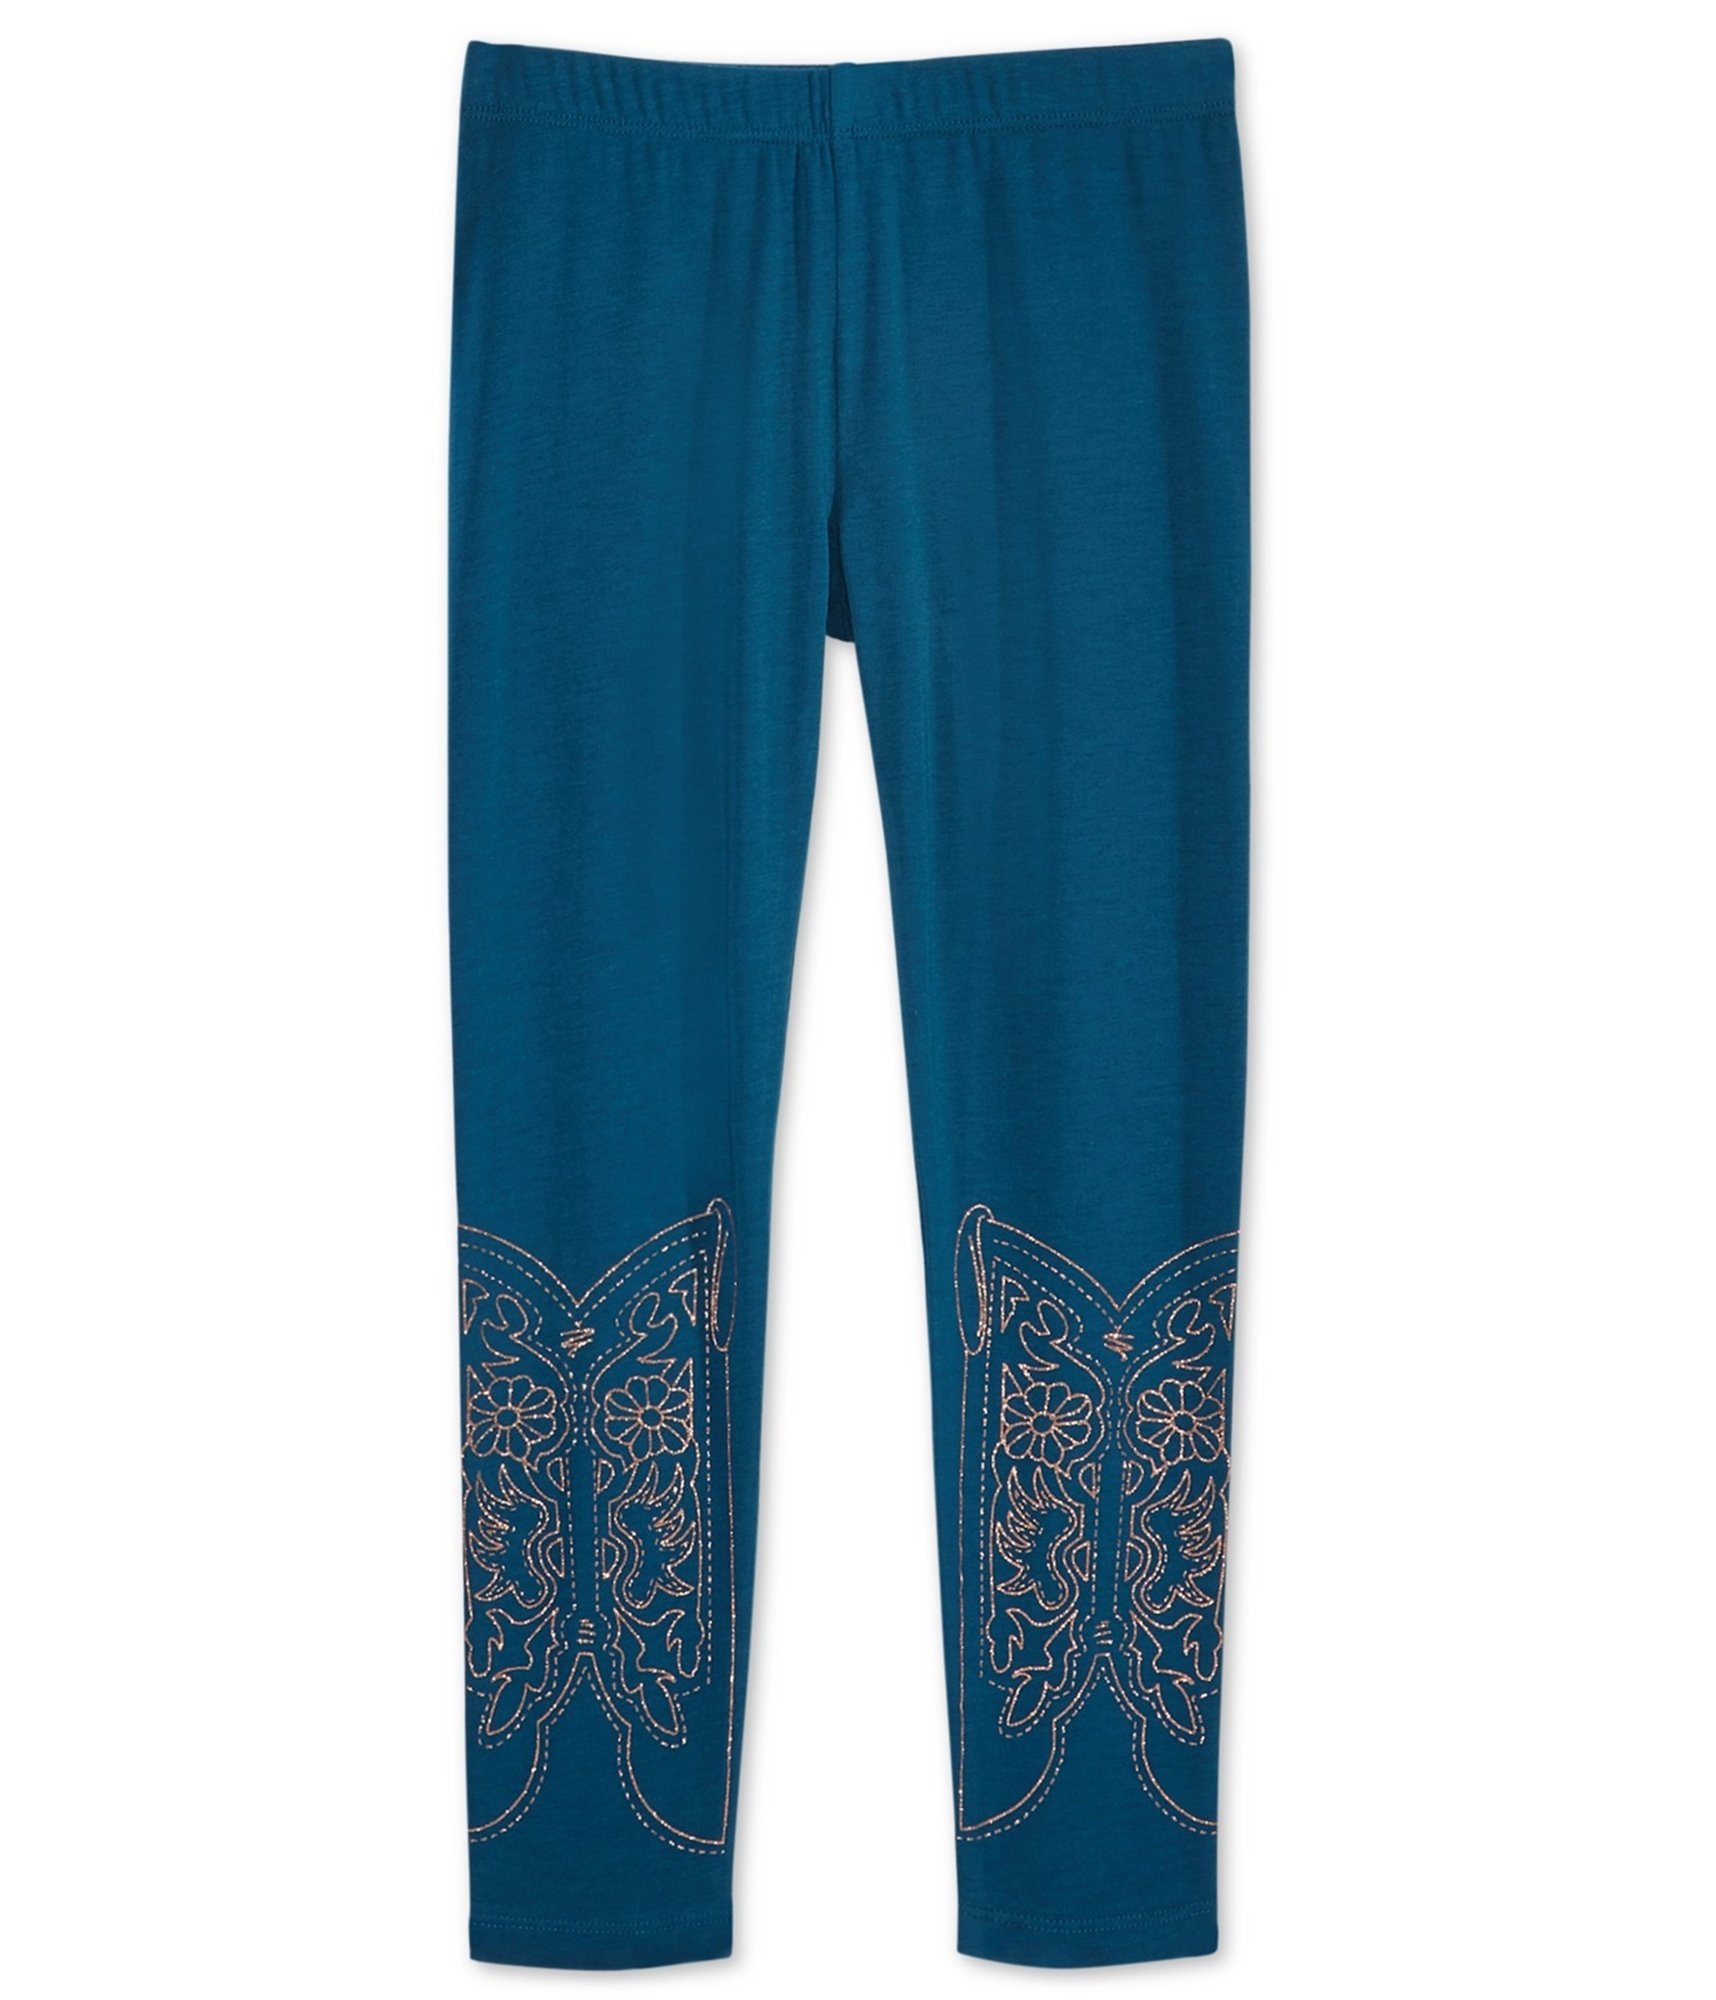 Epic Threads Girls Western Boot Casual Leggings Blue 6X/21 - Little Kids (4-7)